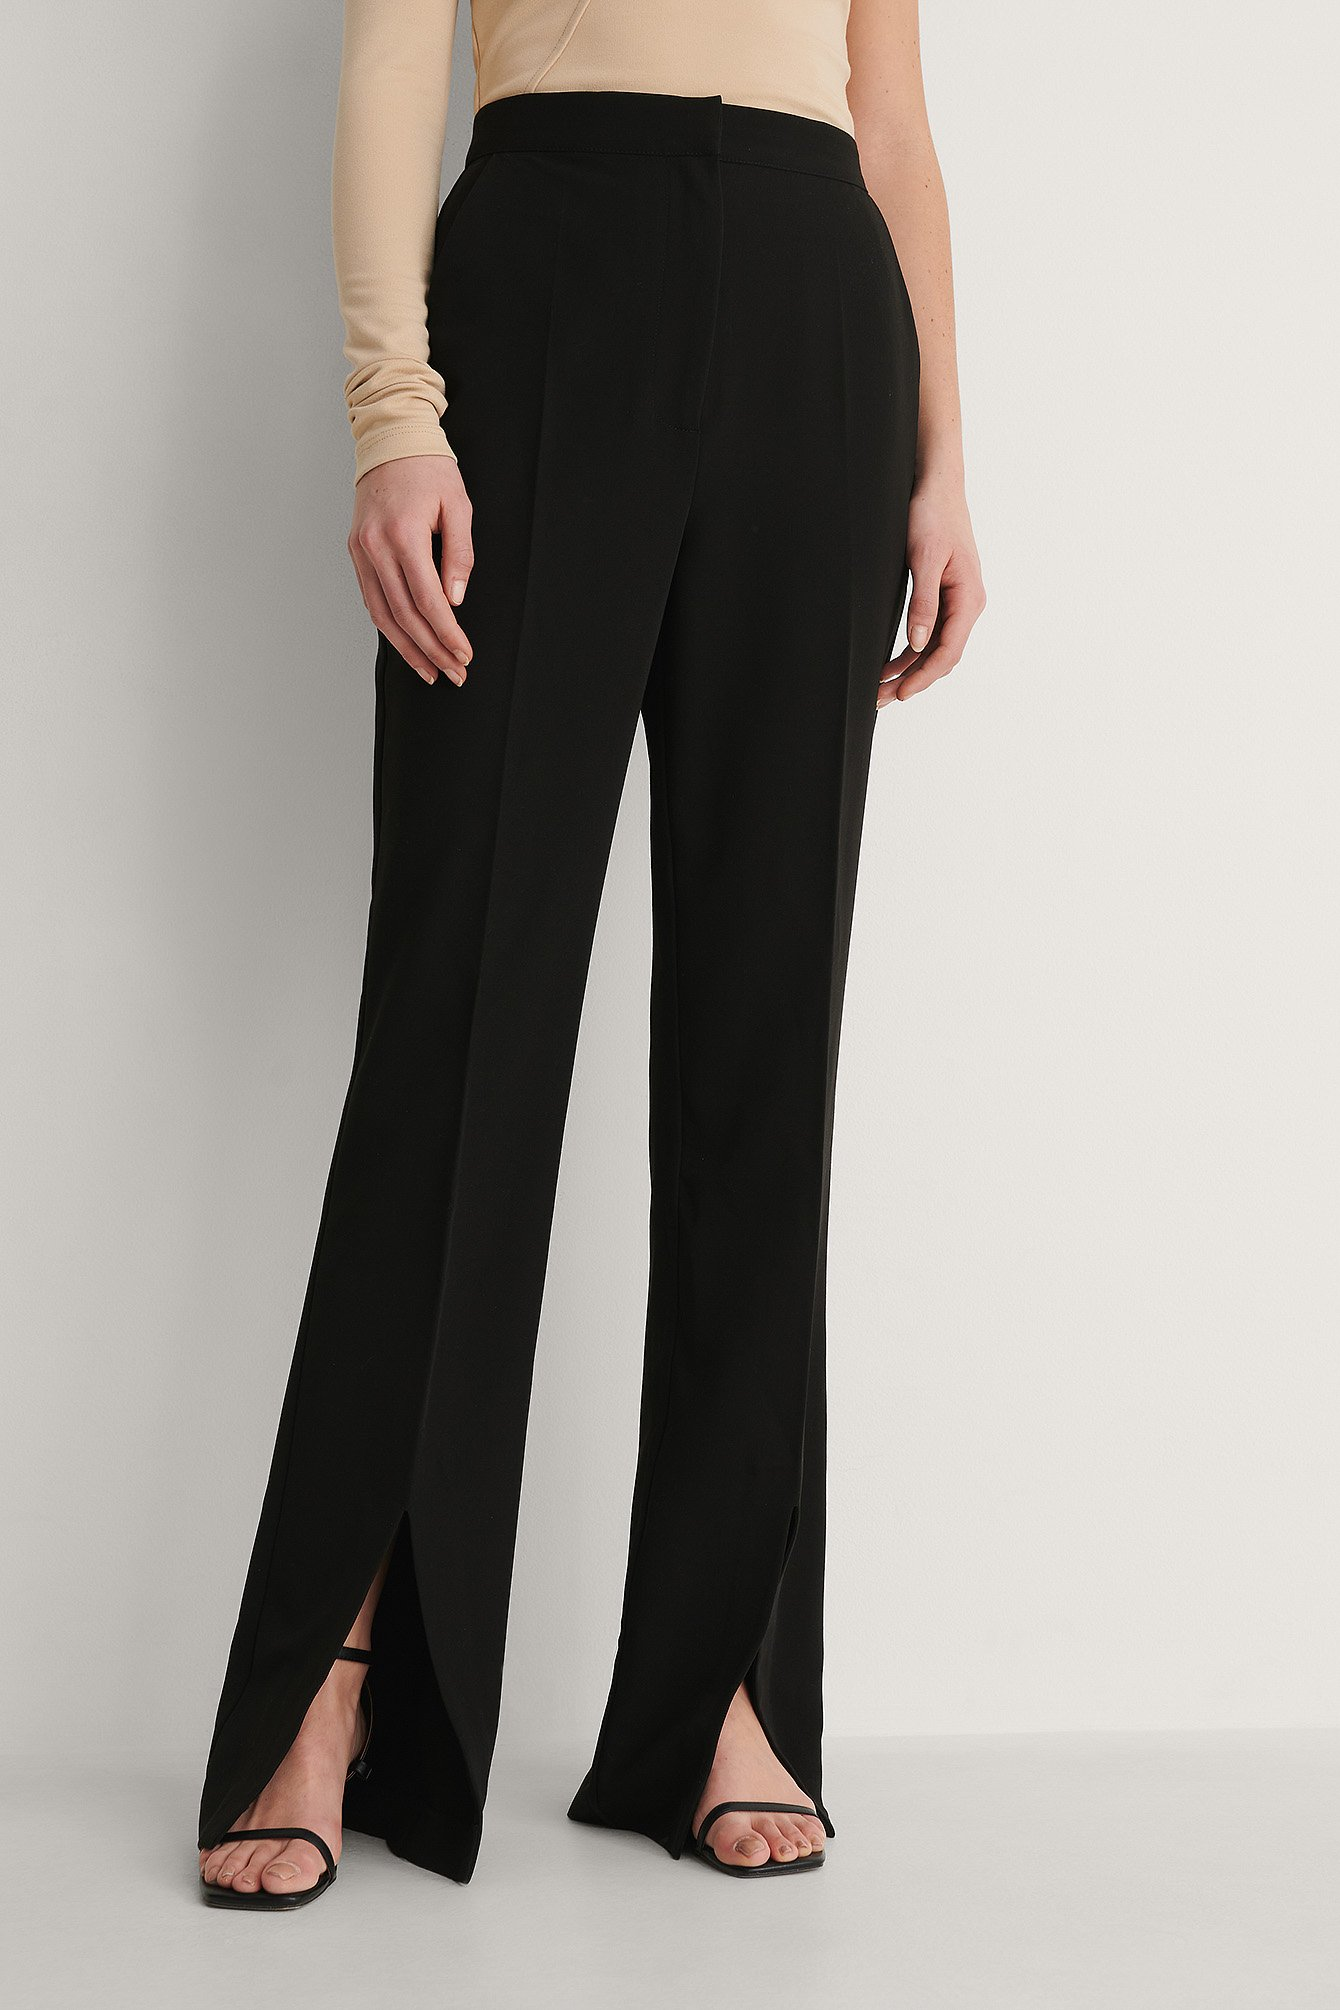 Black Front Slit Trousers